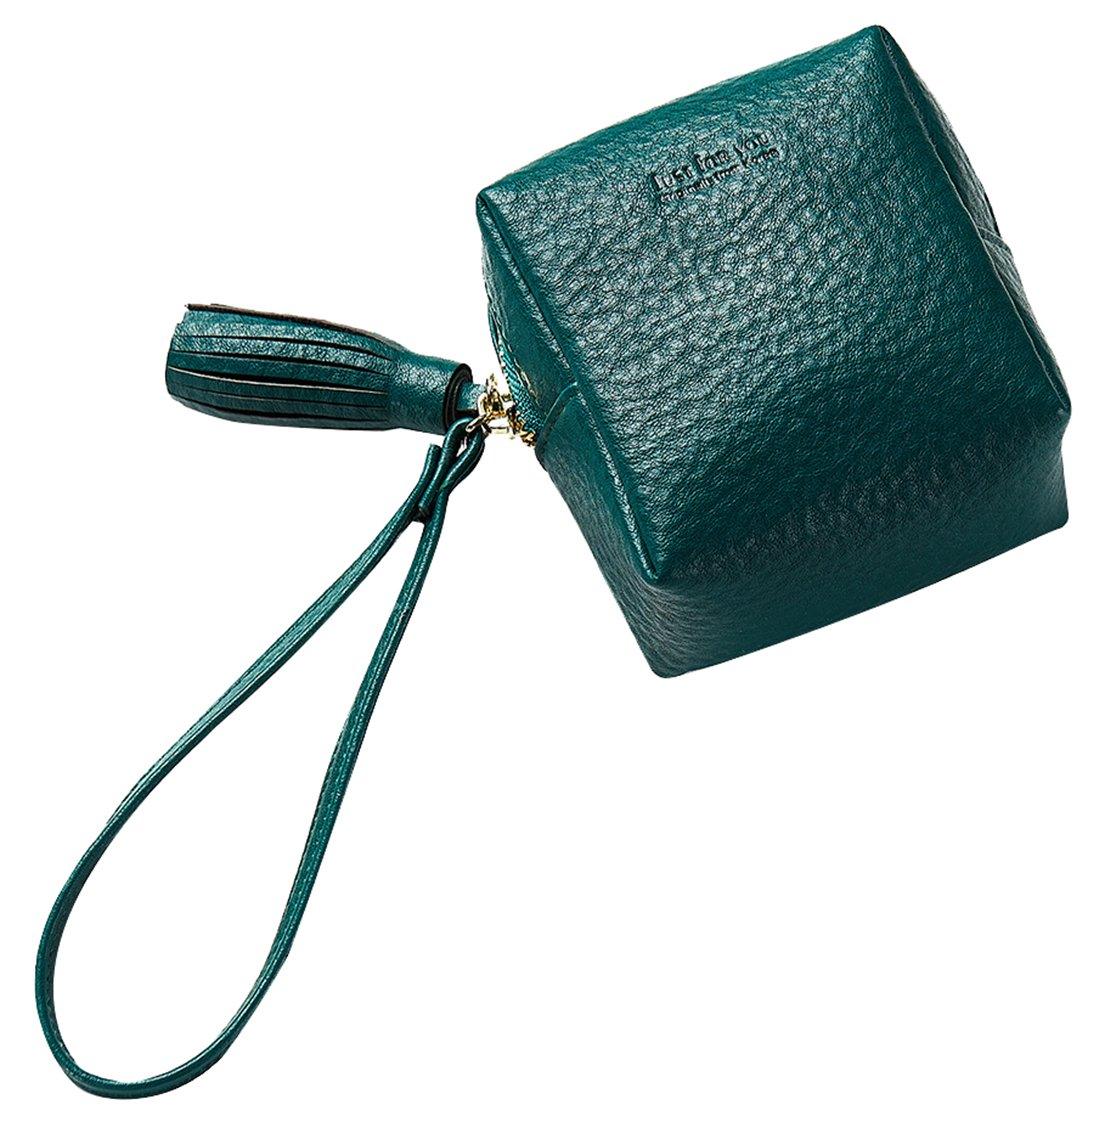 FEMAROLY Geunine Leather Female Handbags Skull Wallet Large-capacity Coin Pokect Cute Mini Purse With Wrist Strap Credit card Clutch for Women and Girls Dark Green by FEMAROLY